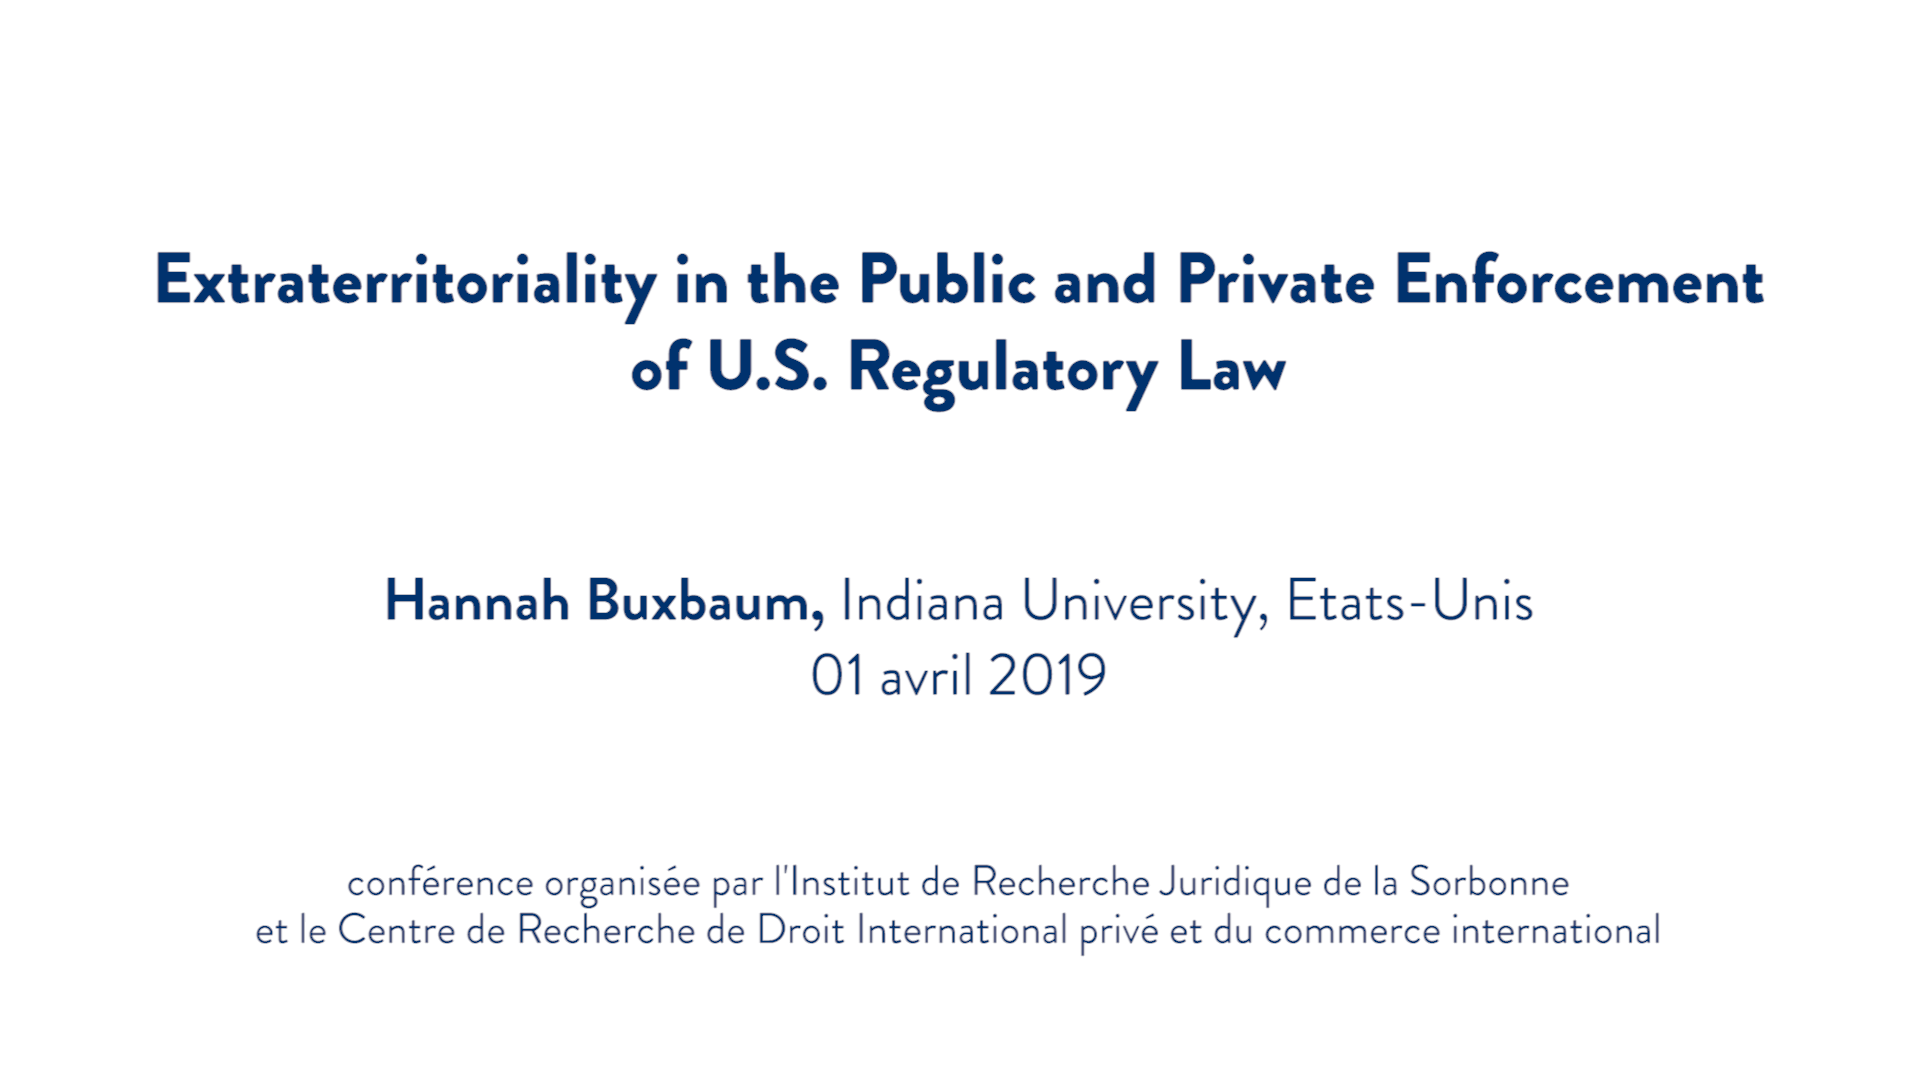 Extraterritoriality in the Public and Private Enforcement of U.S. Regulatory Law - Hannah Buxbaum